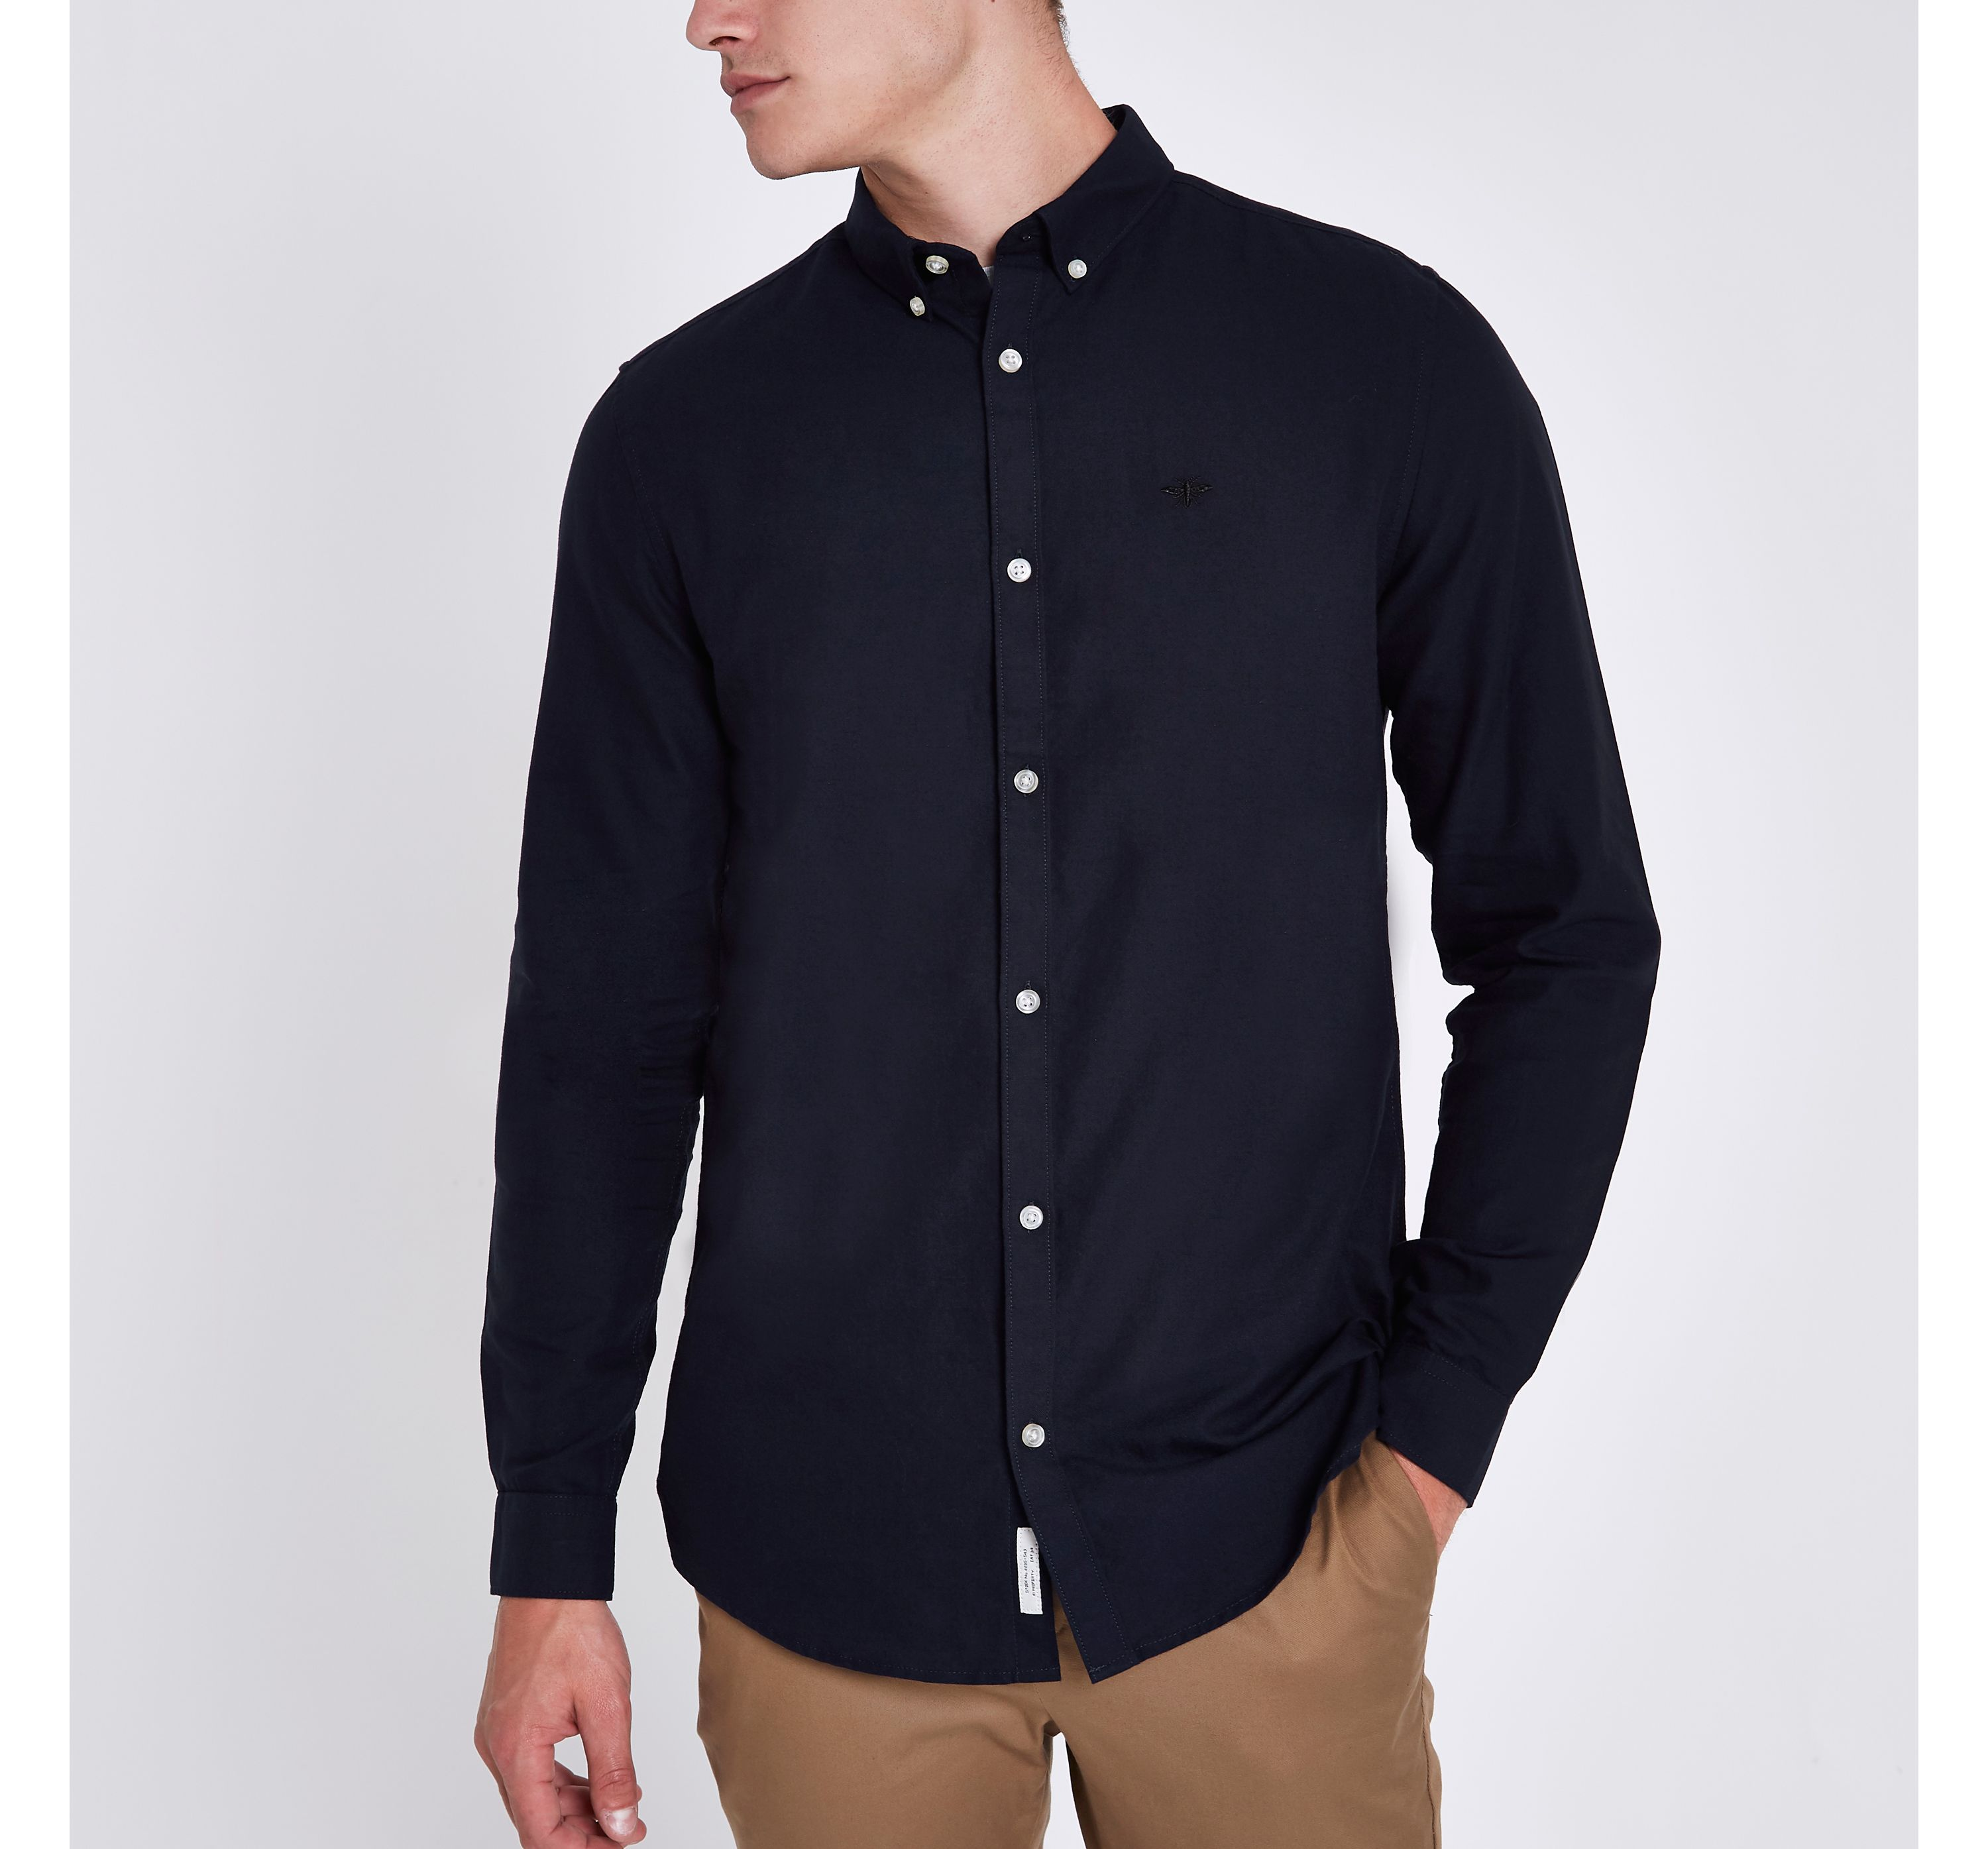 e70606703 Mens Navy wasp embroidered slim fit Oxford shirt. £22